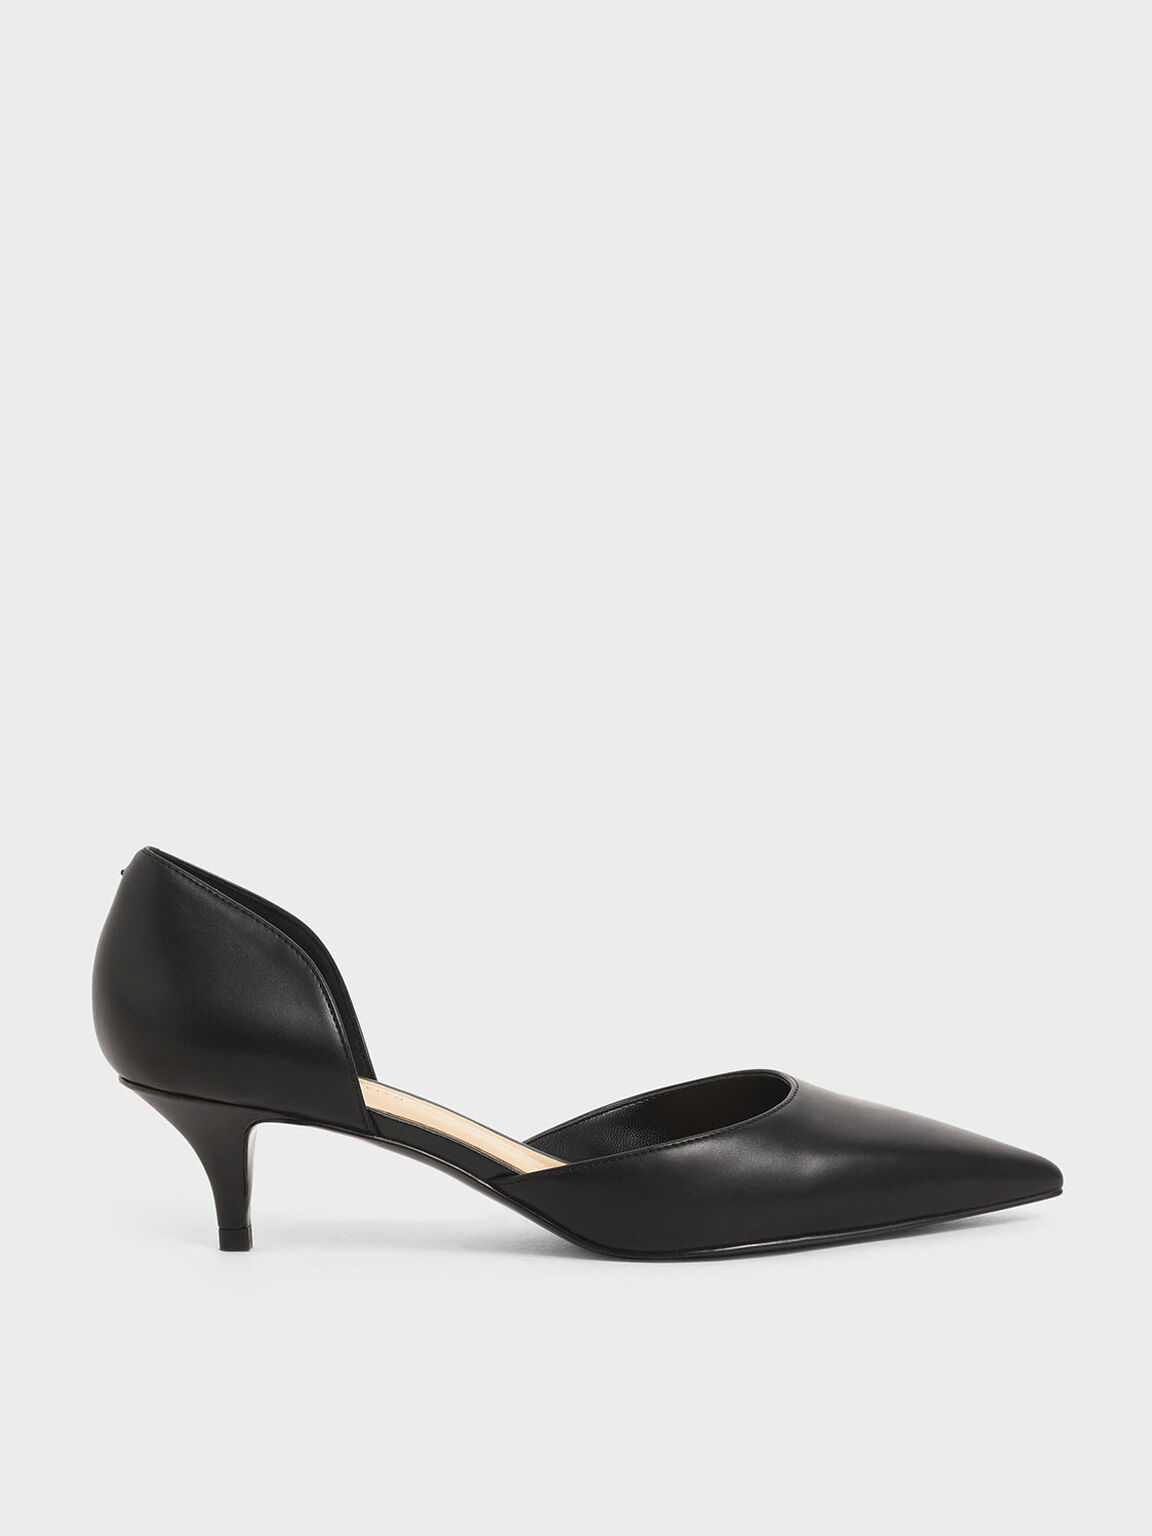 D'Orsay Kitten Heel Pumps, Black, hi-res